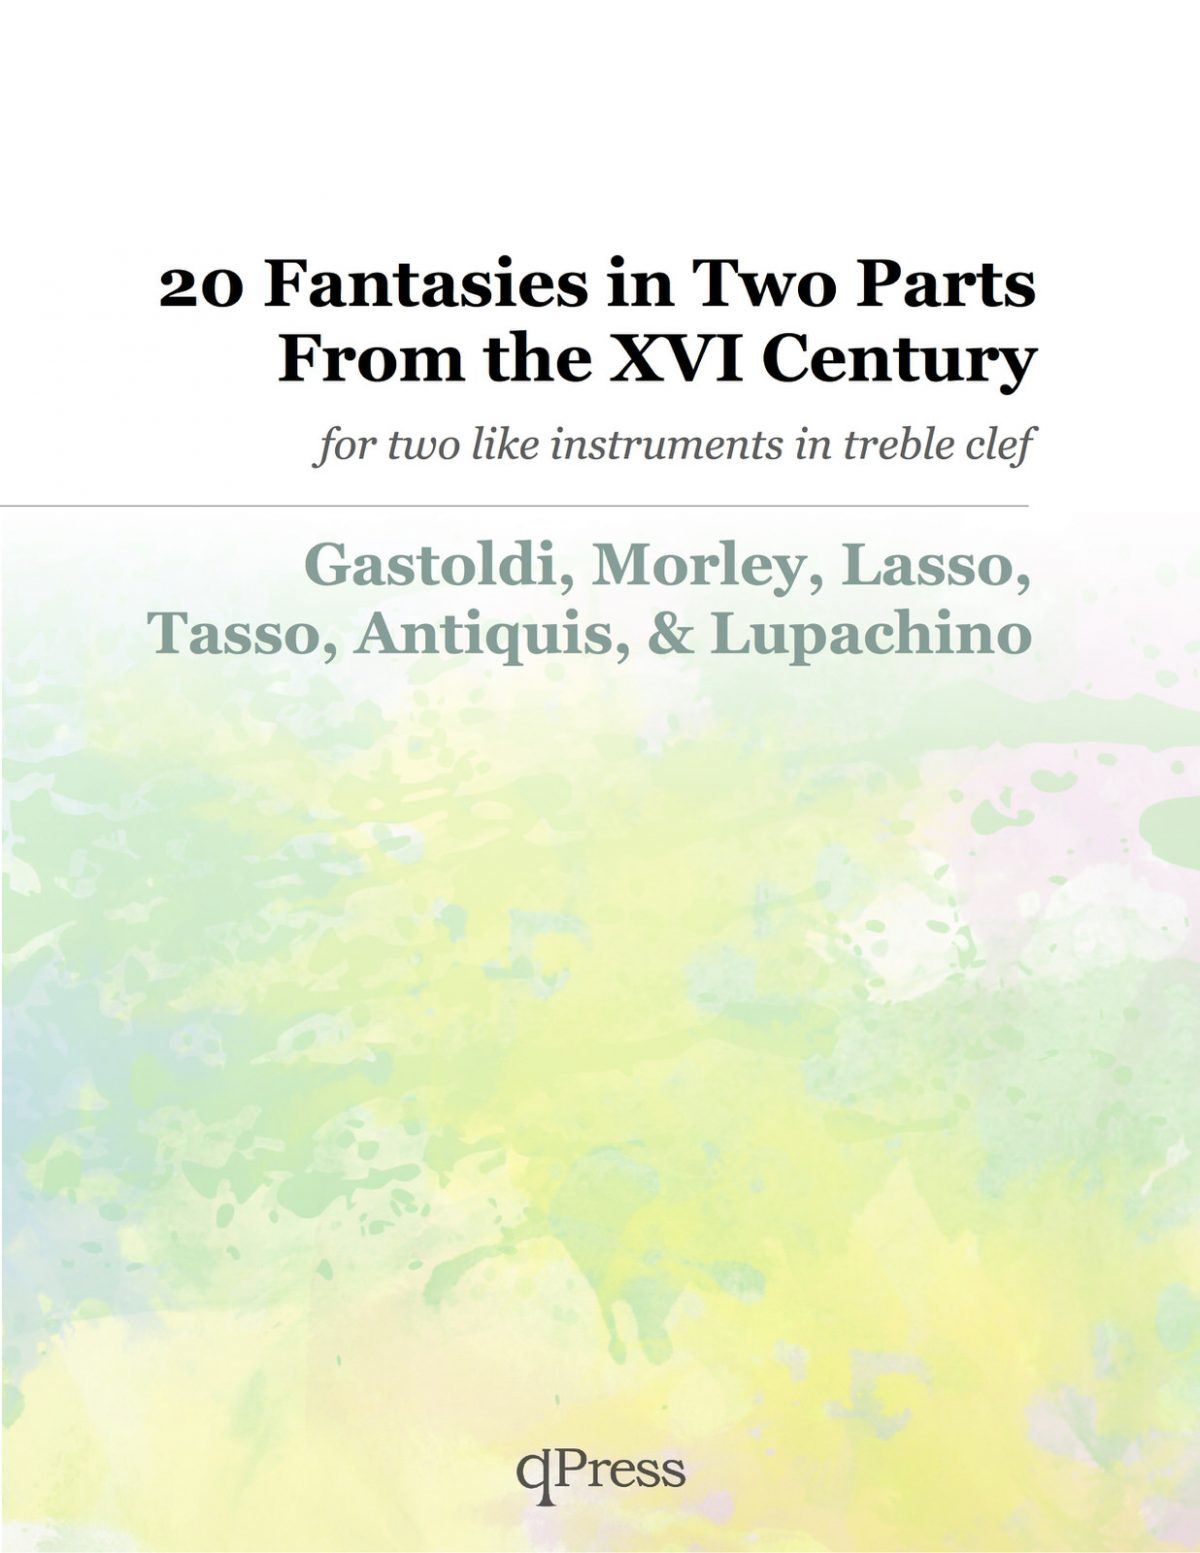 20-fantasies-in-two-parts-from-the-16th-century